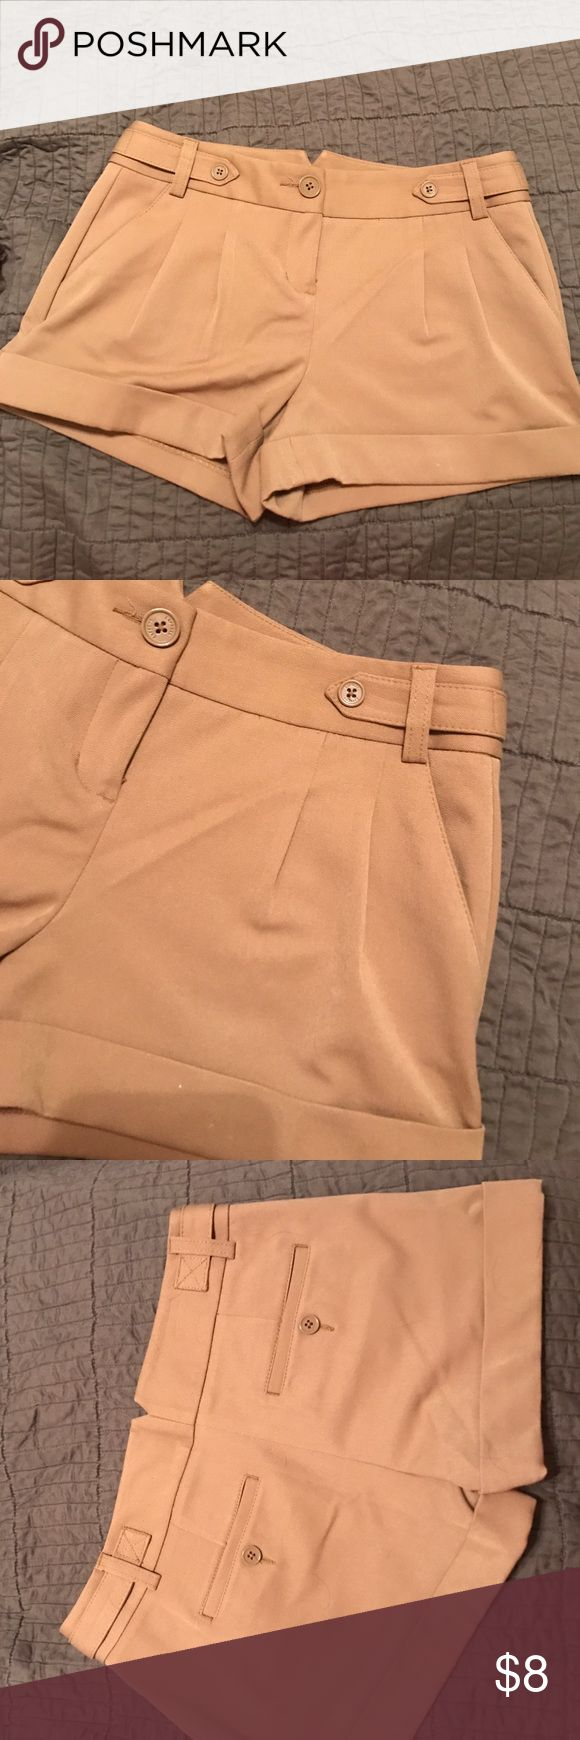 Dressy camel shorts Cuffed camel shorts. Nice thick material. Front slit pockets. Express Shorts